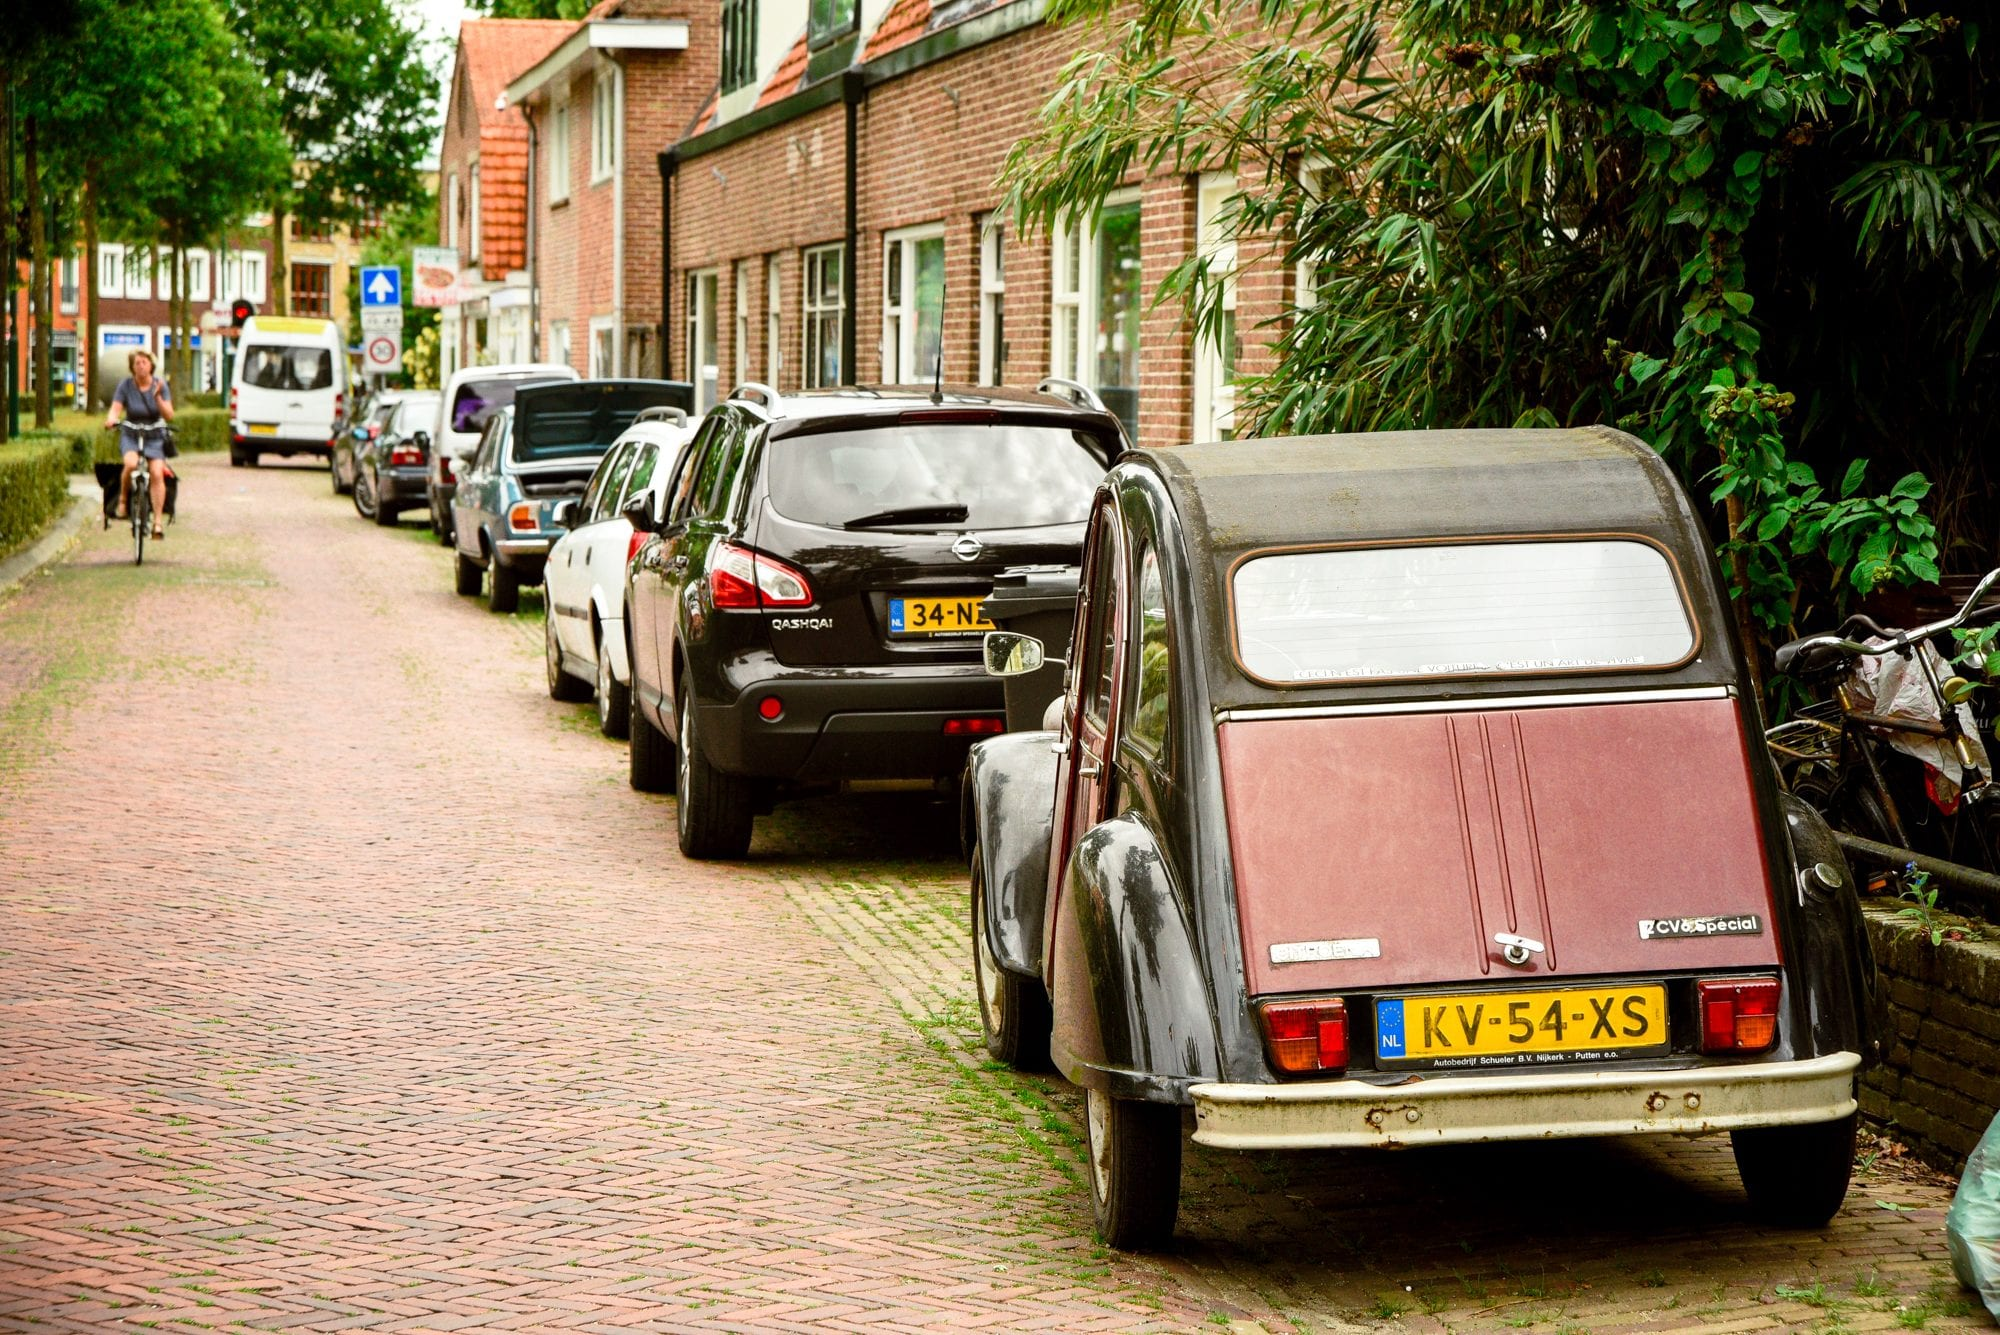 cars on the side of the road, with an old model citroen closest, the road is cobblestone